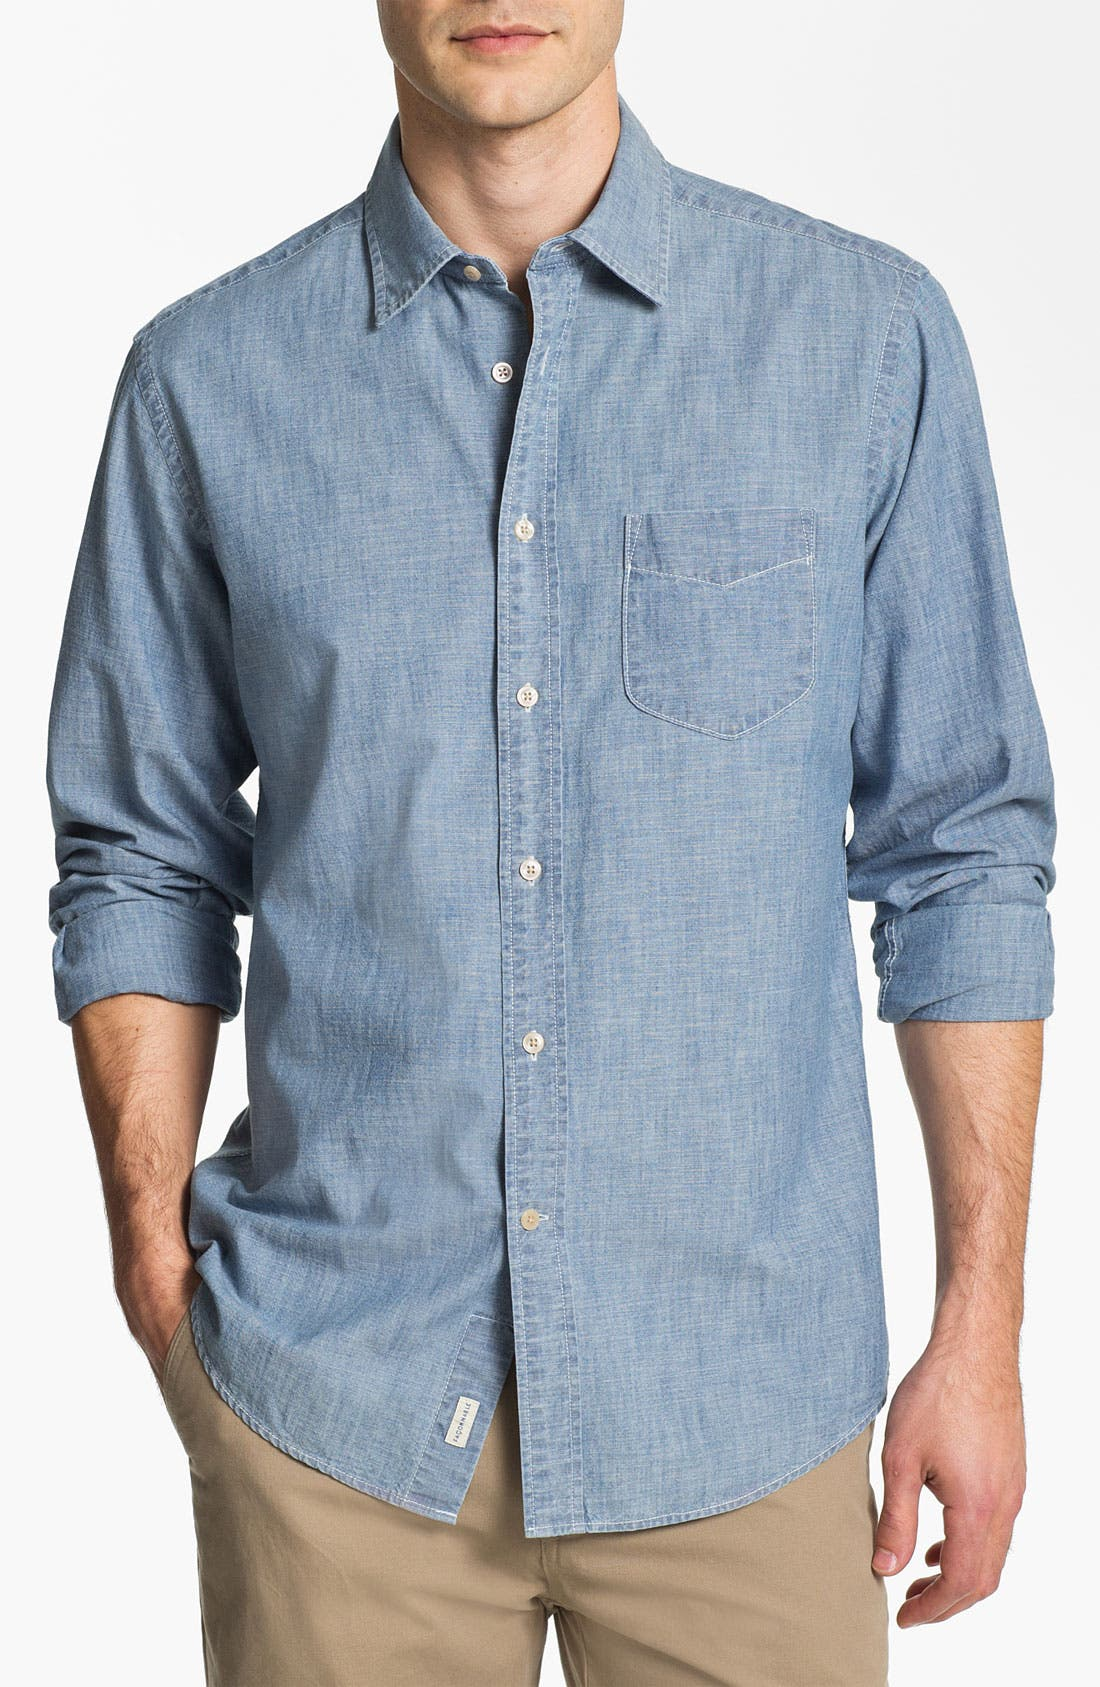 Main Image - Façonnable Tailored Denim Regular Fit Chambray Sport Shirt